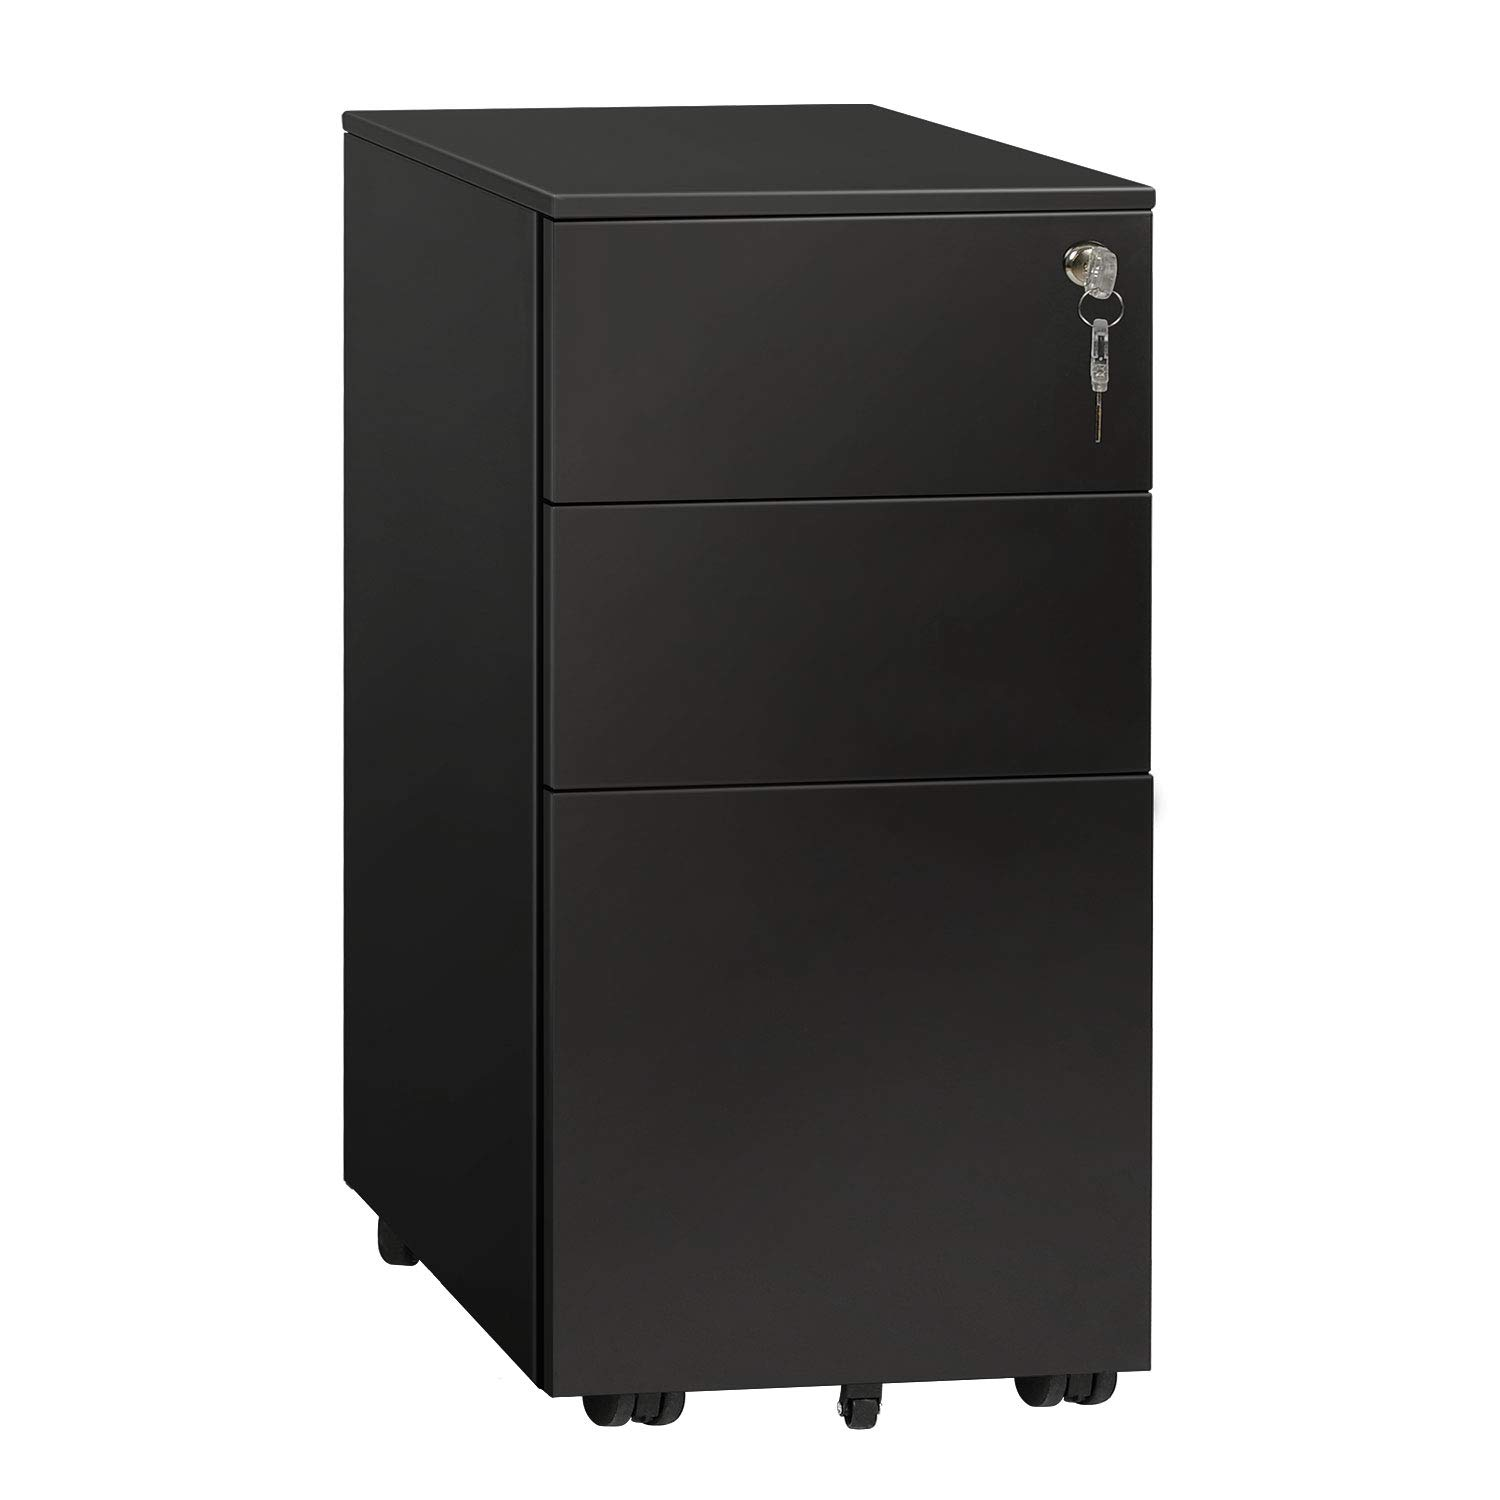 DEVAISE Locking File Cabinet, 3 Drawer Rolling Metal Filing Cabinet, Fully Assembled Except Wheels, Black by DEVAISE